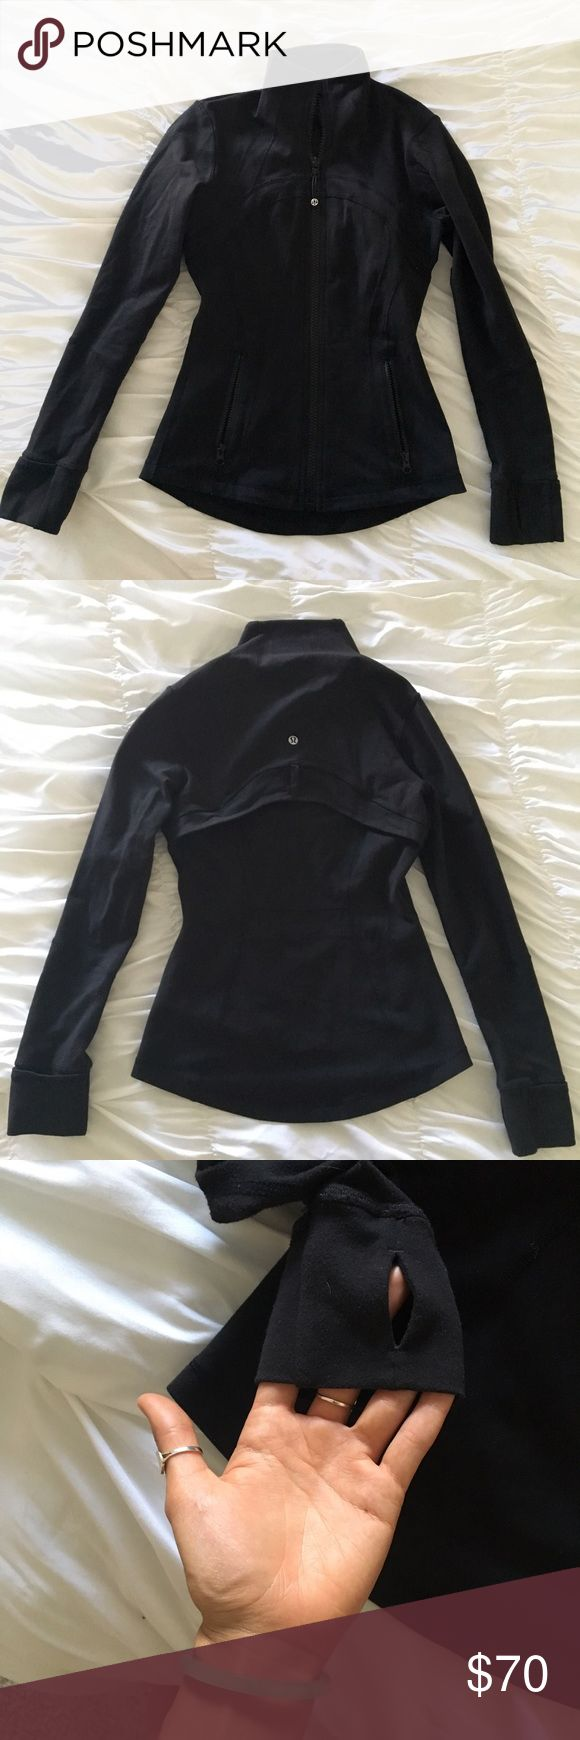 Lululemon Define Black Athletic Jacket Size 4 which fits a size xs/s. Worn maybe 2 times. It's black and has thumb holes too. Cheaper on Ⓜ️ lululemon athletica Jackets & Coats